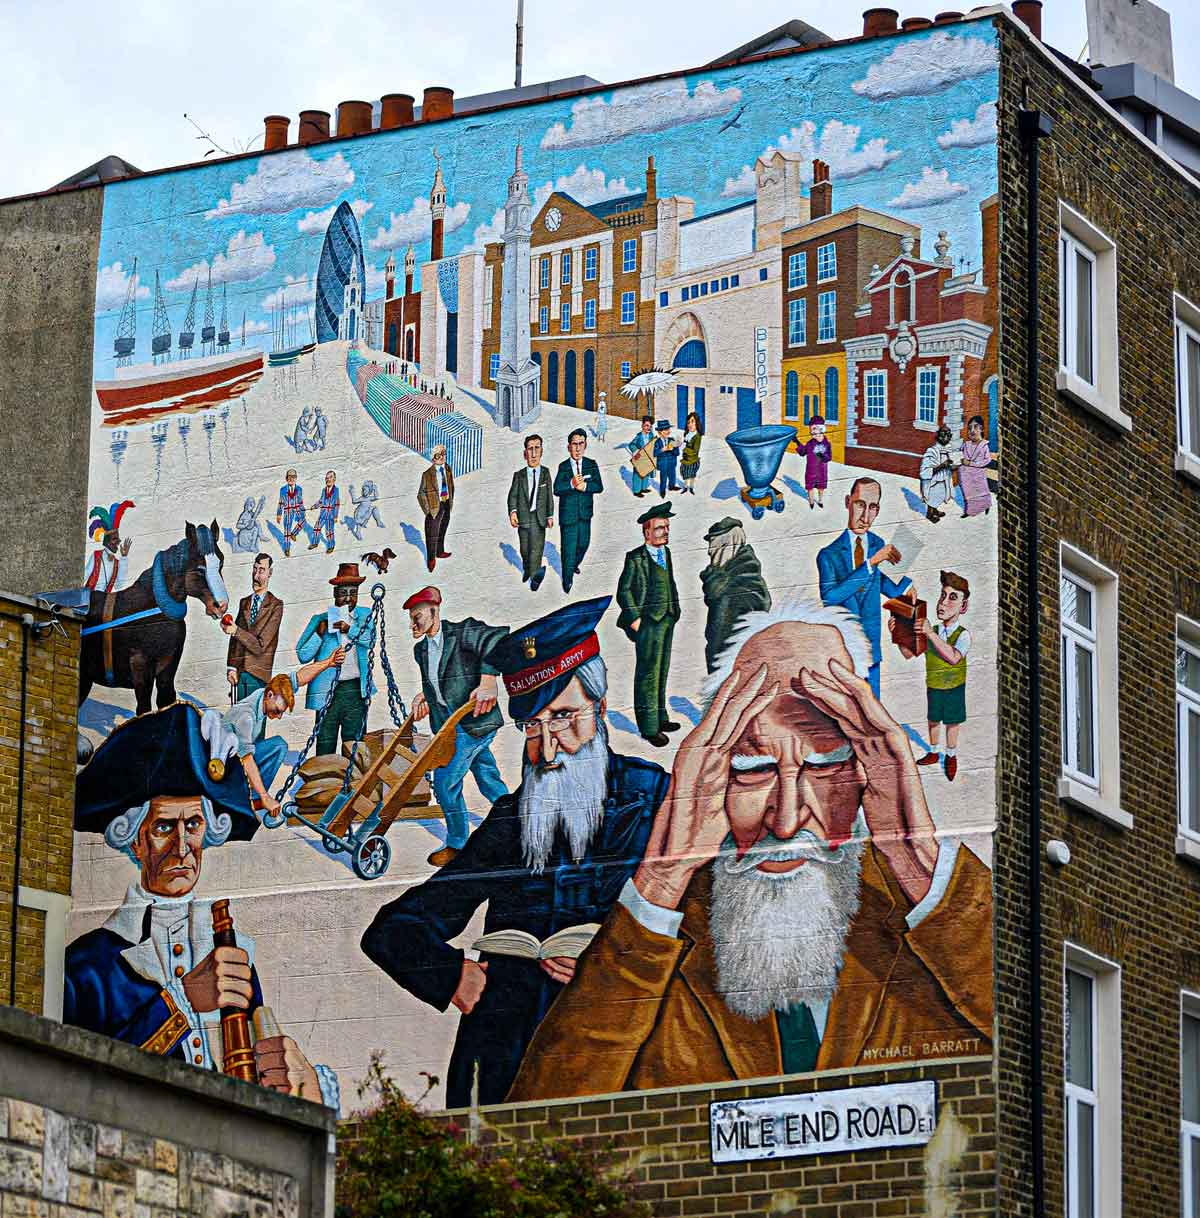 Mural on Mile End Road of famous people in Whitechapel, London history